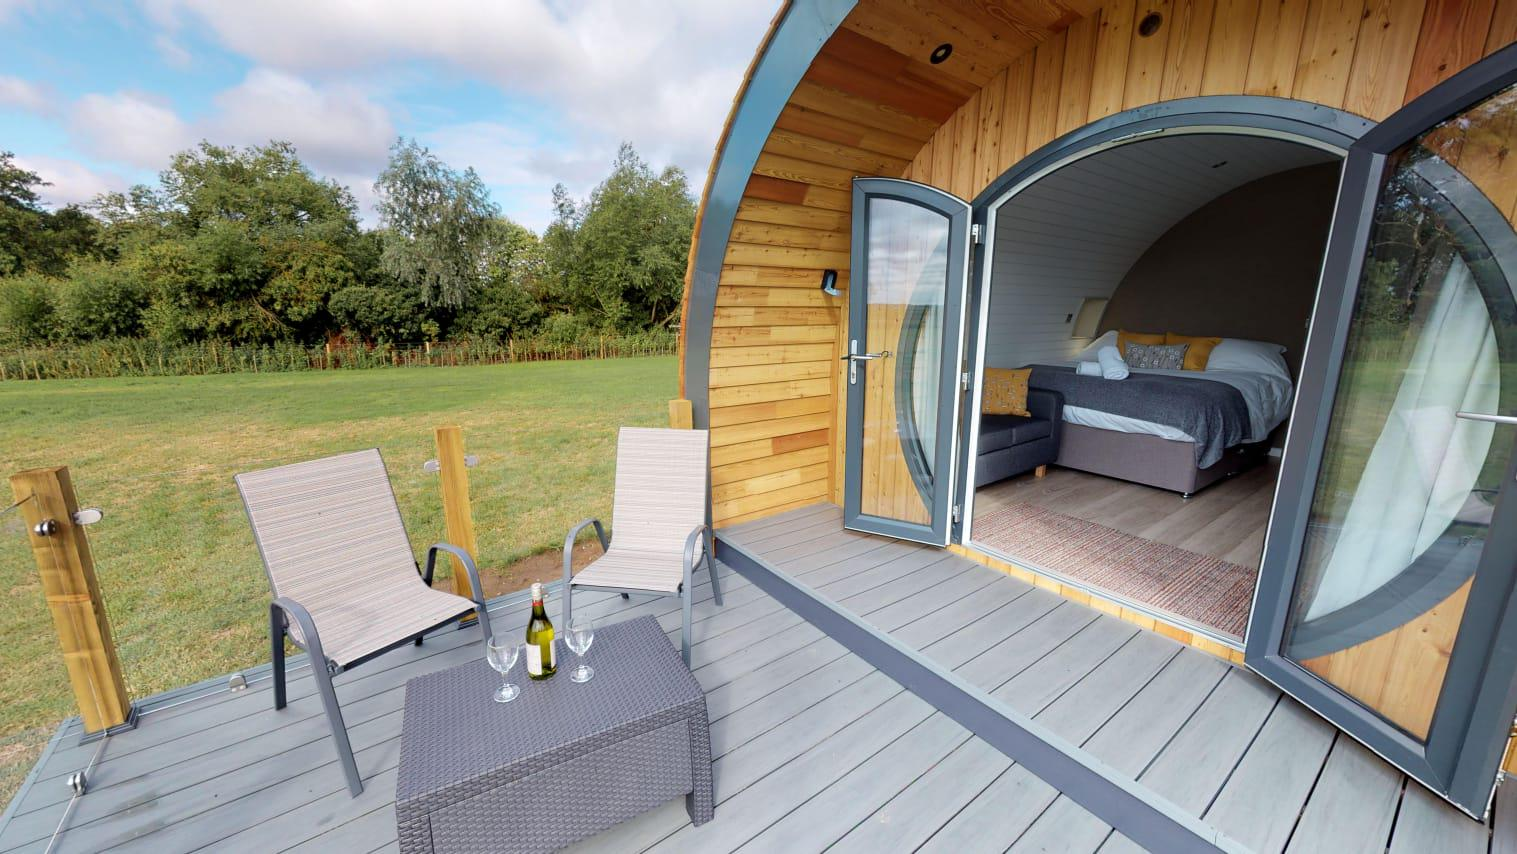 Glamping in Great Yarmouth – Cool Camping